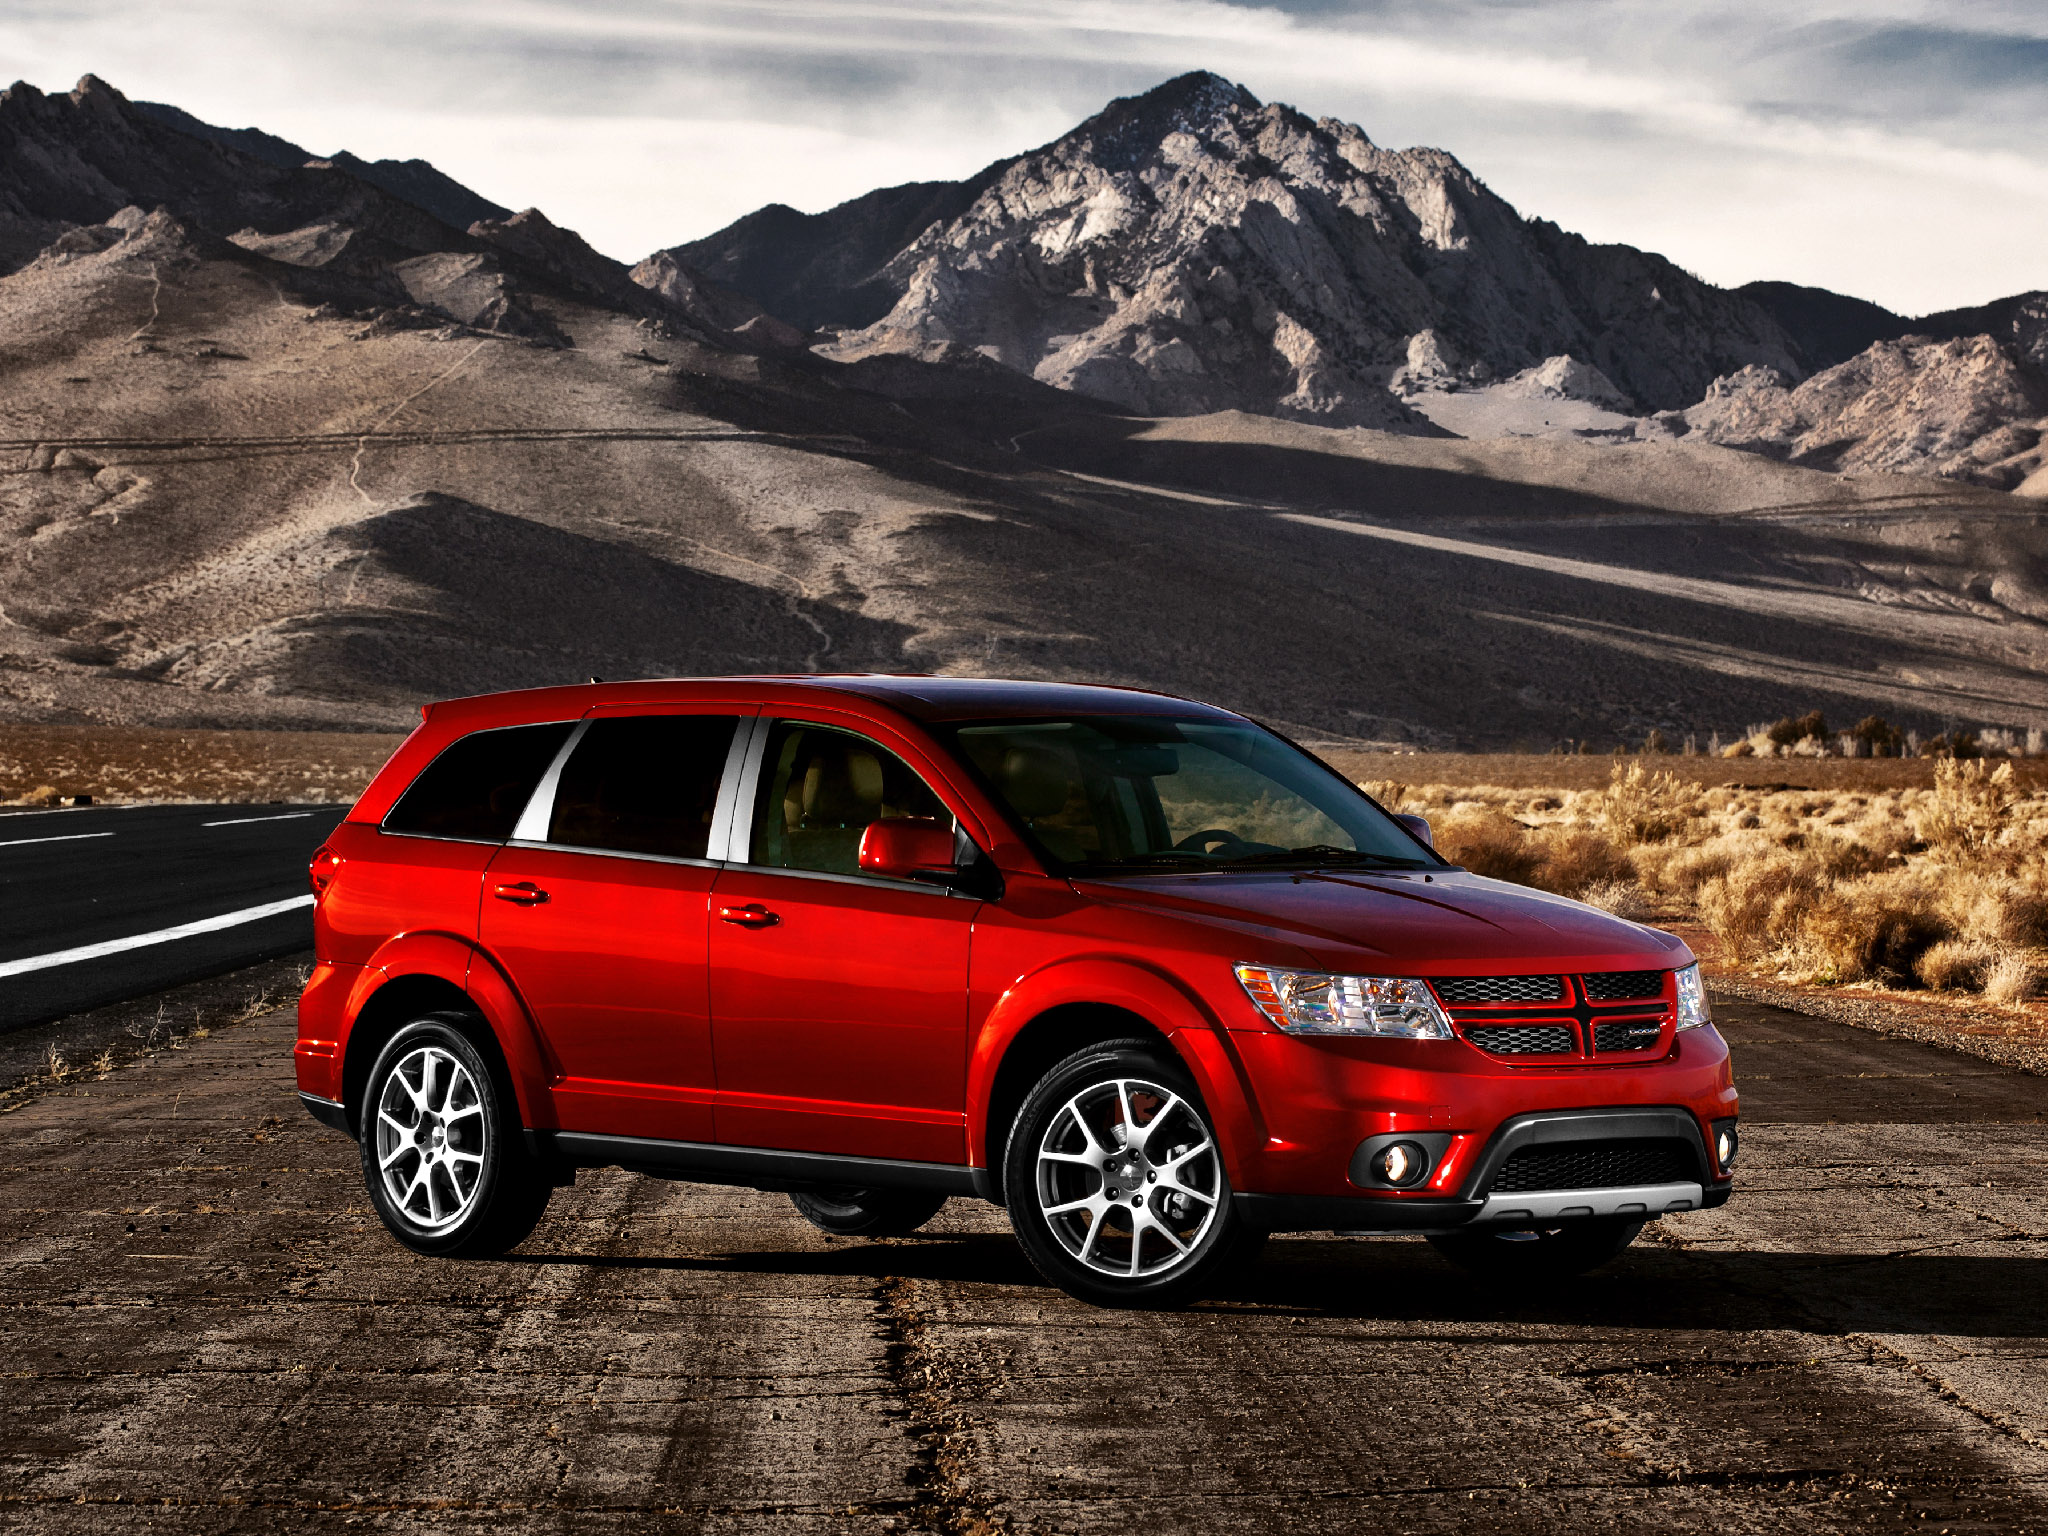 dodge journey rt 2011 dodge journey rt 2011 photo 02 car in pictures car photo gallery. Black Bedroom Furniture Sets. Home Design Ideas